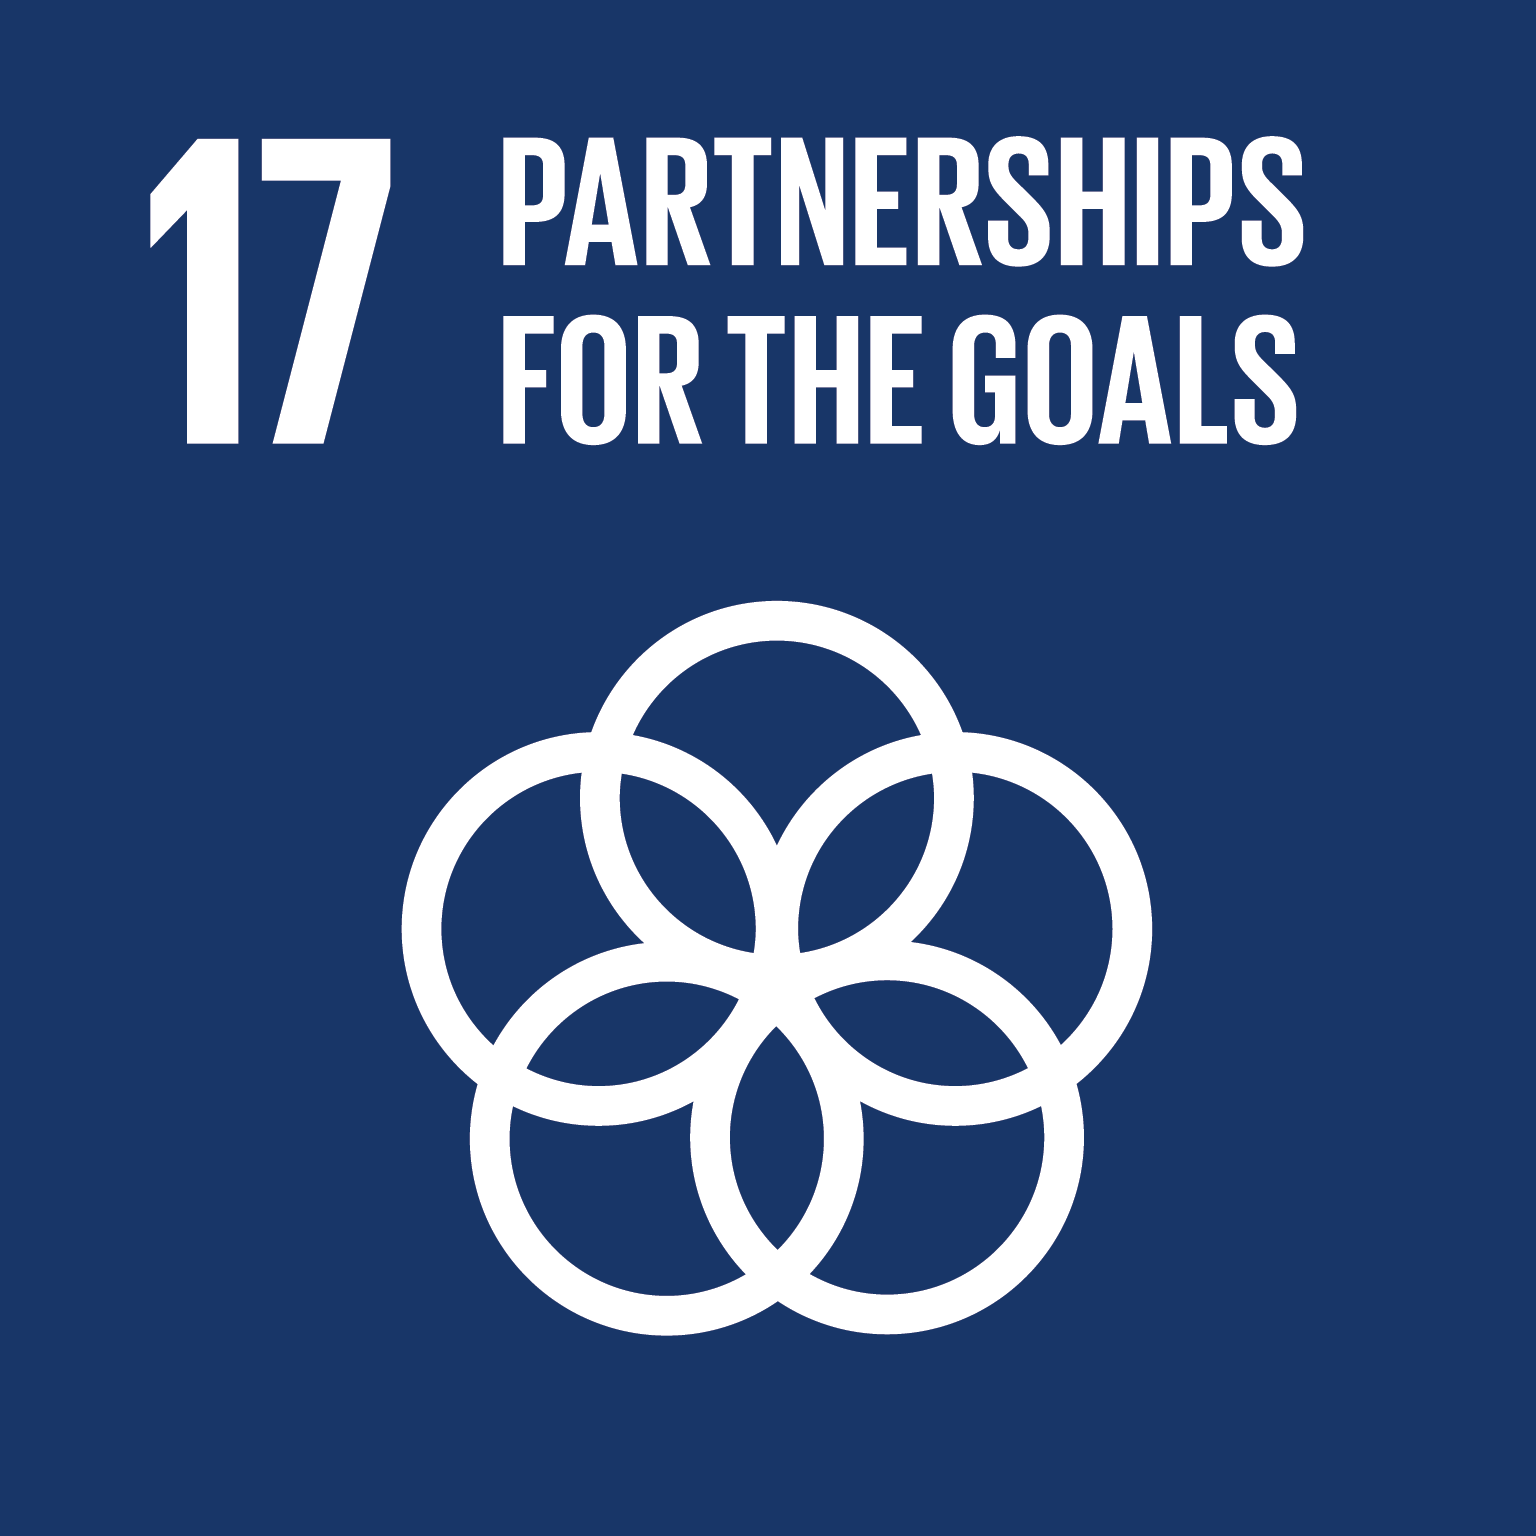 SDG goals 17 partnerships for the goals